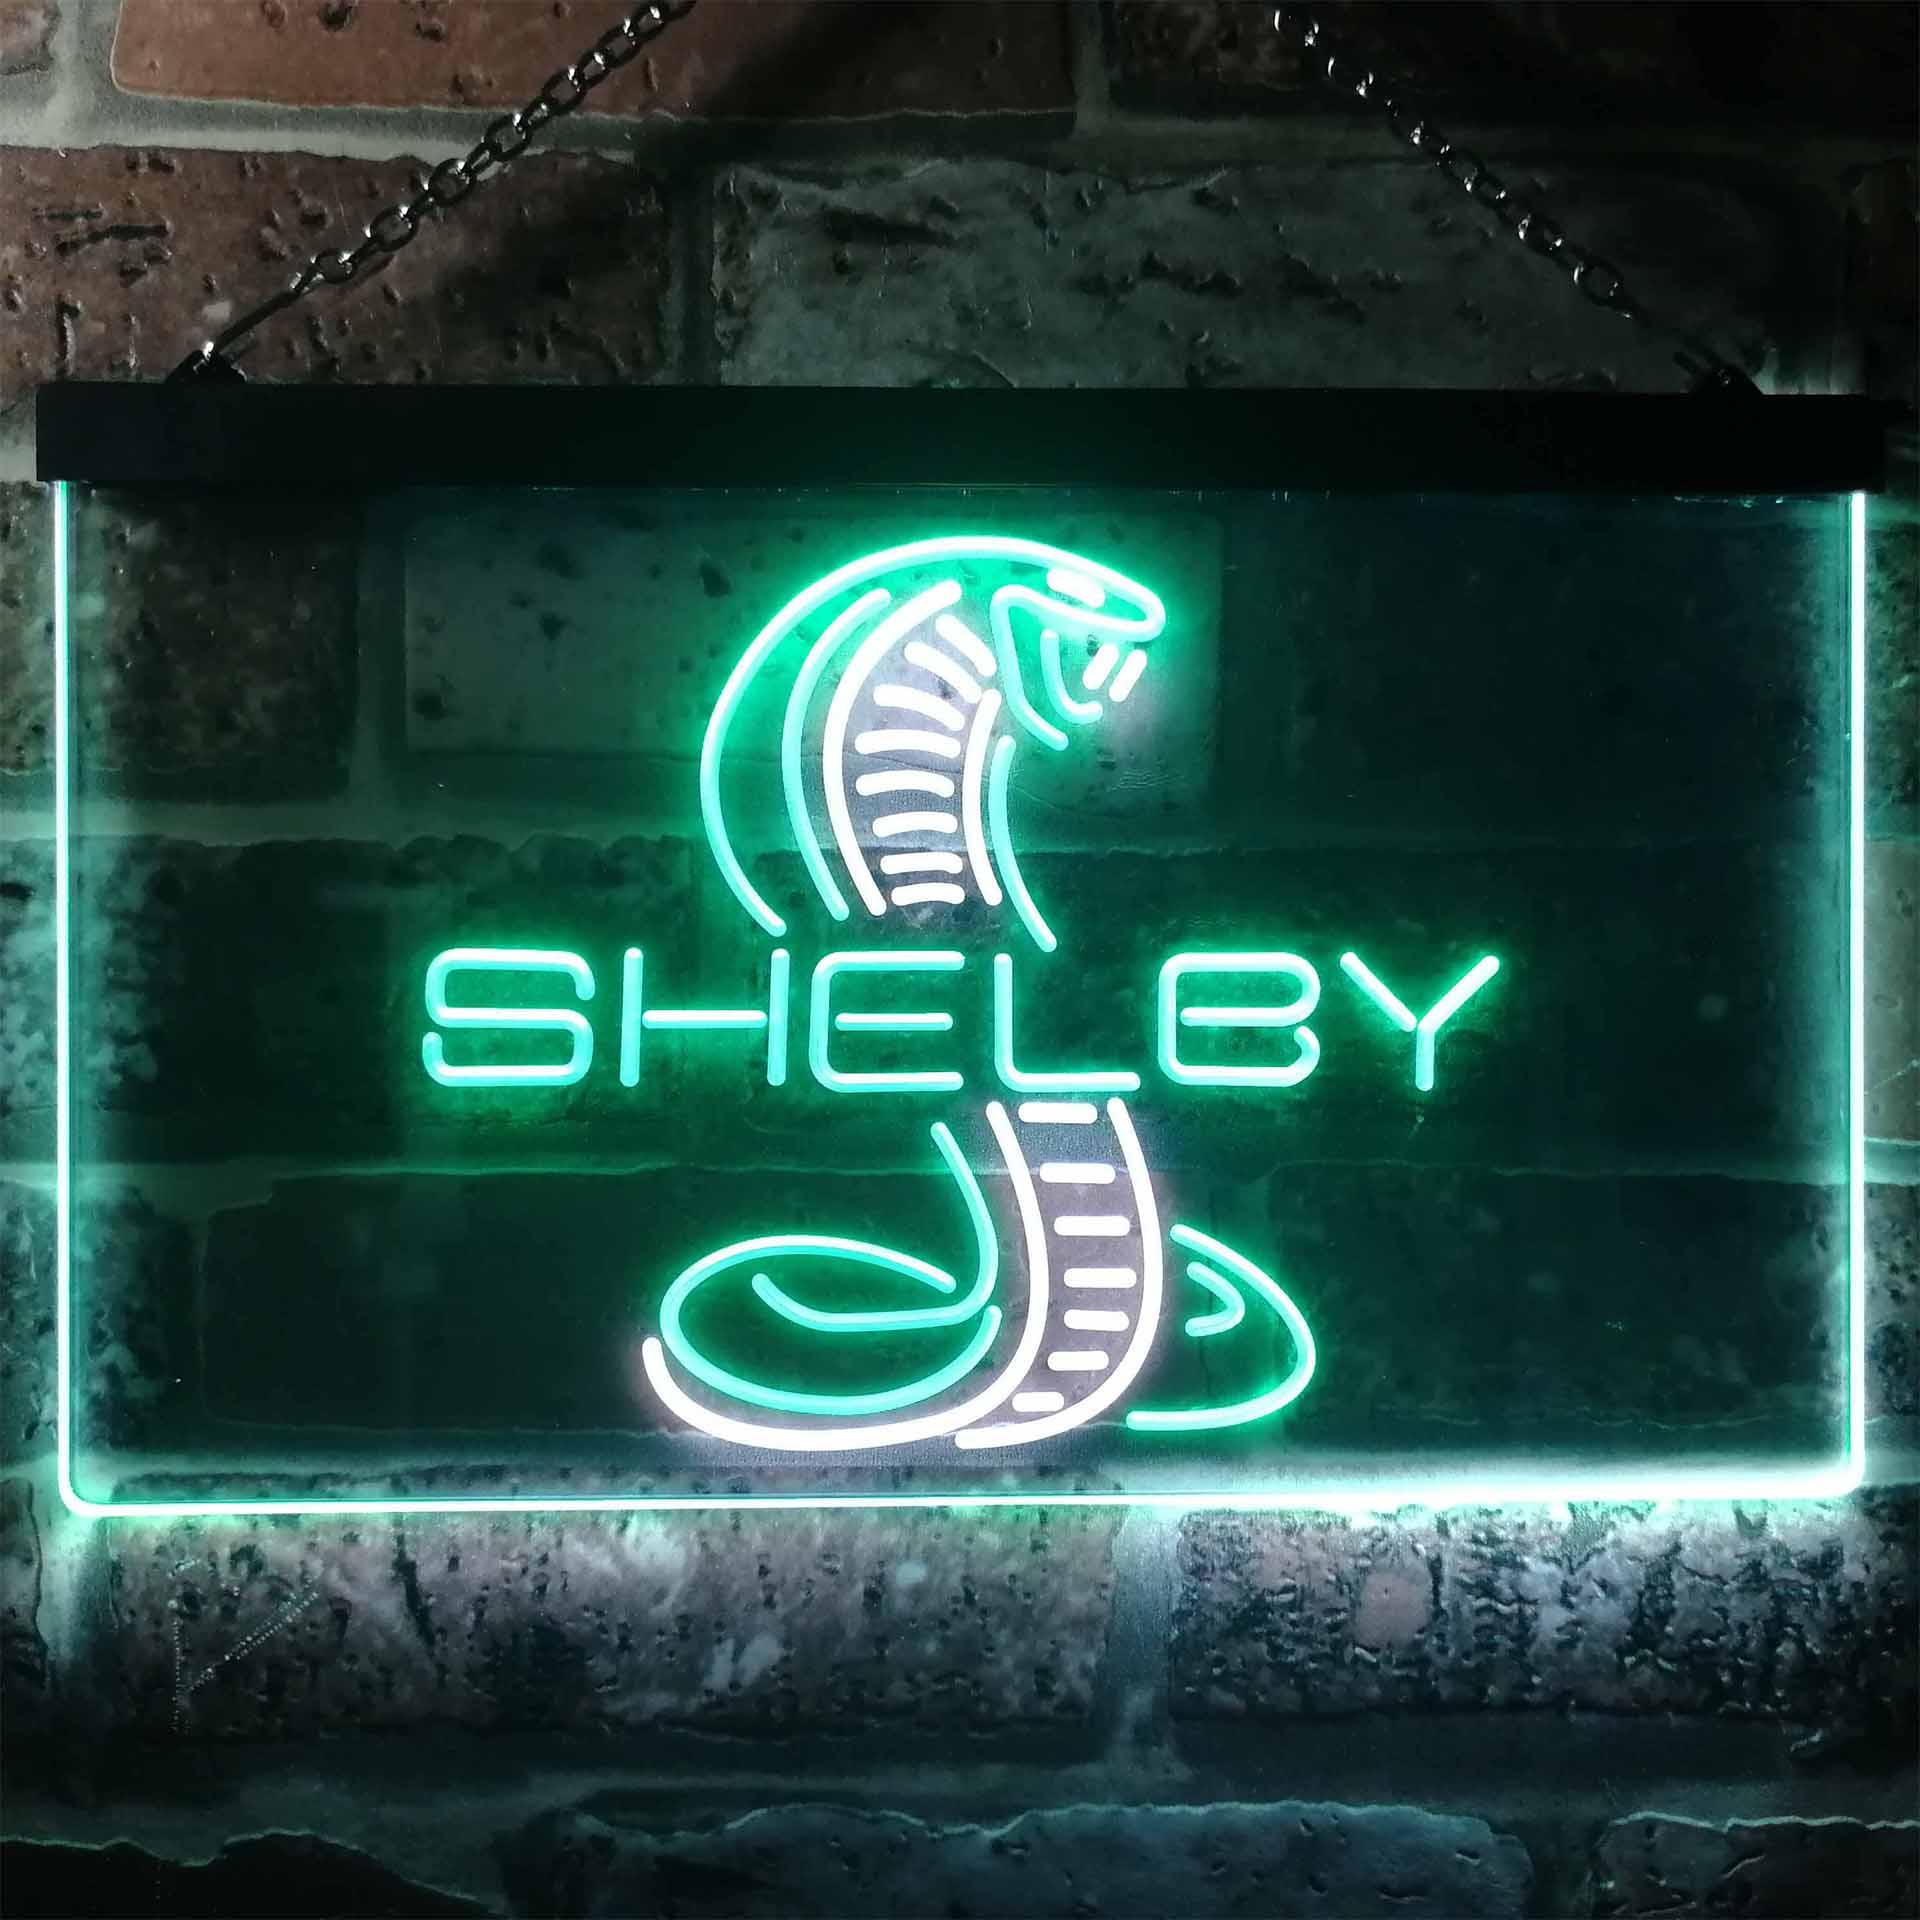 Ford Shelby Car Dual Color LED Neon Sign ProLedSign